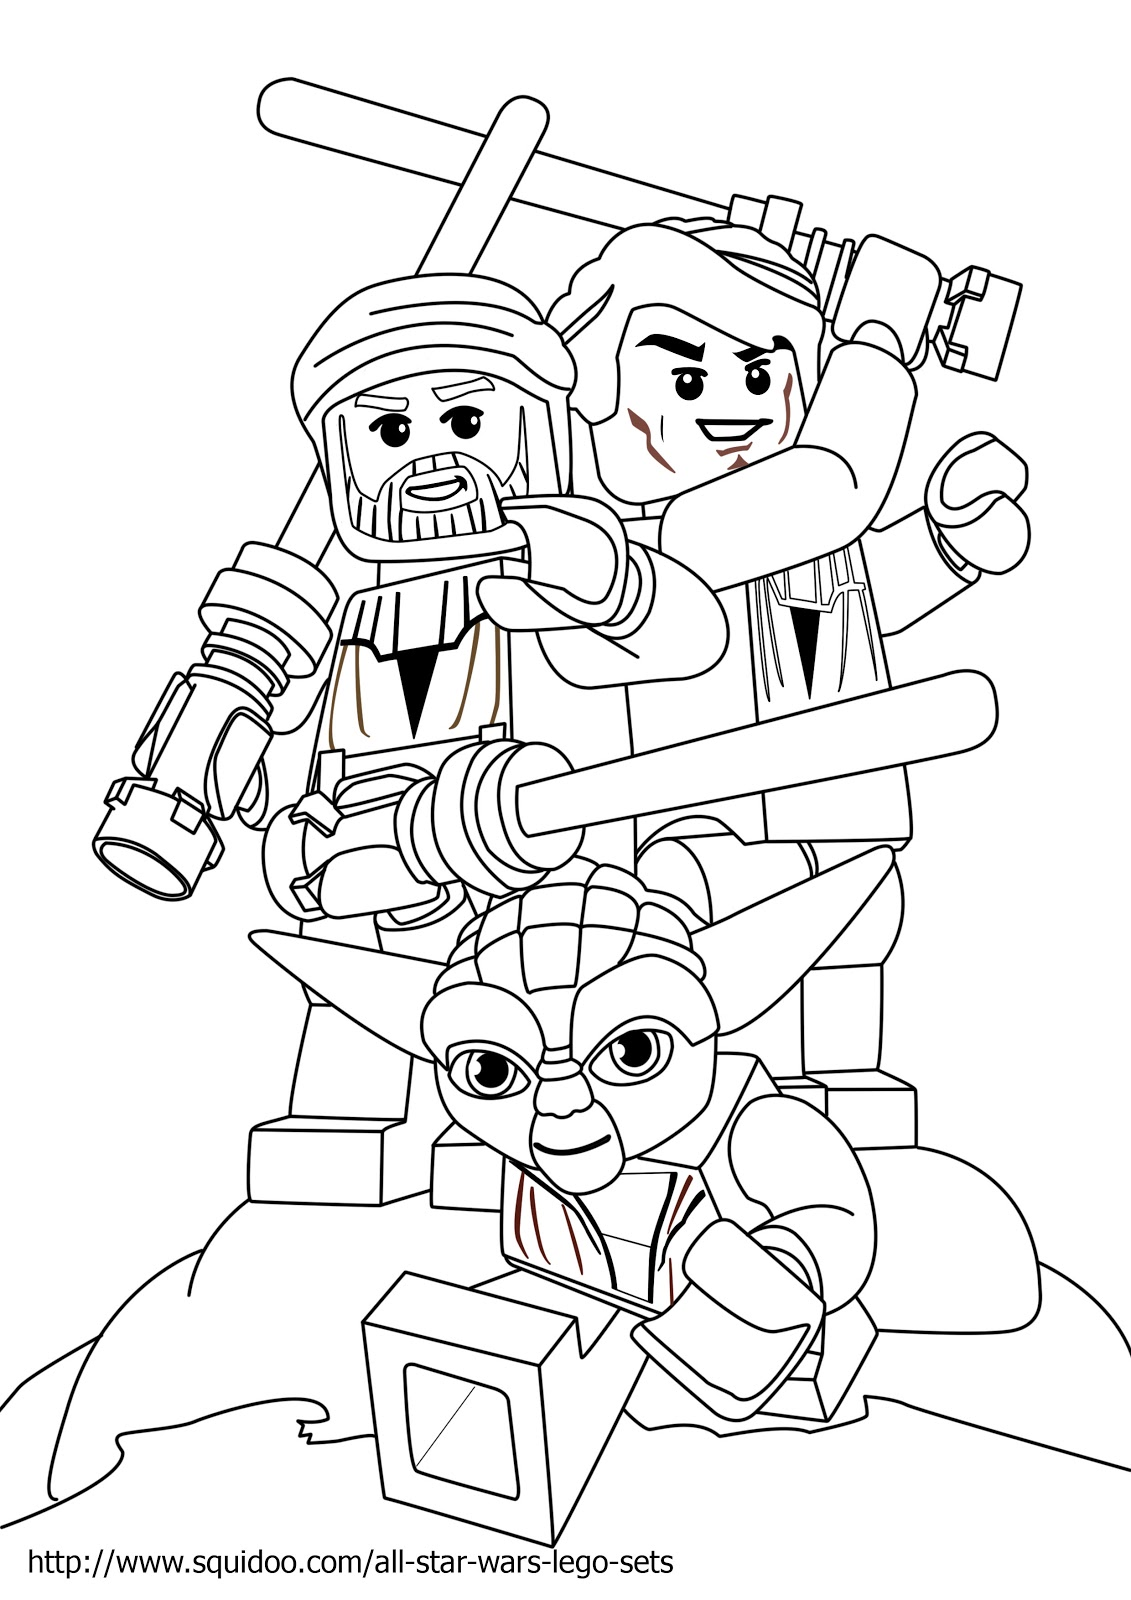 1131x1600 Lego Star Wars Yoda Coloring Pages Original Size 1131 X 1600 I